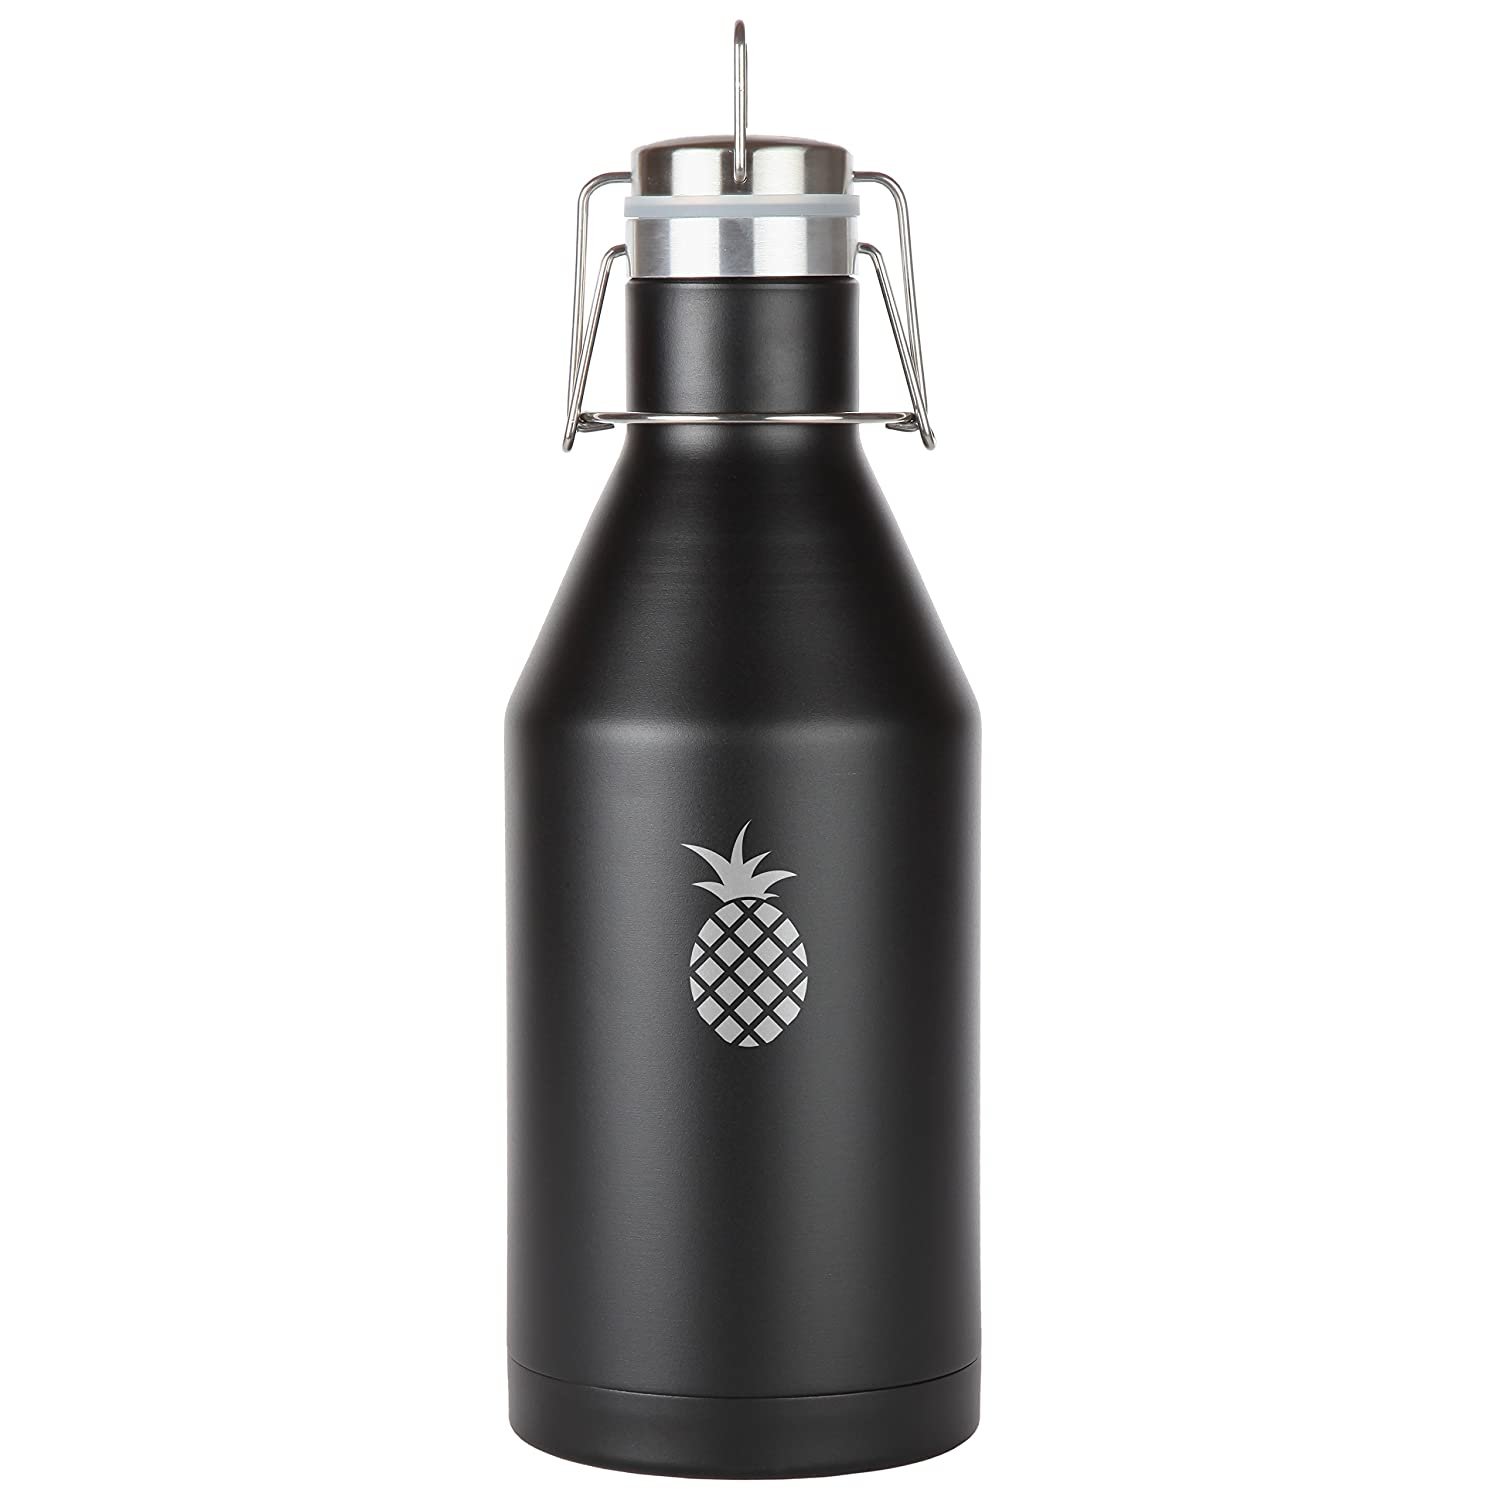 Pineapple Stainless Steel Beer Growler. 64 Oz Leak Proof Vacuum Sealed Beer Growler. Laser Engraved In The Usa Modern Goods Co